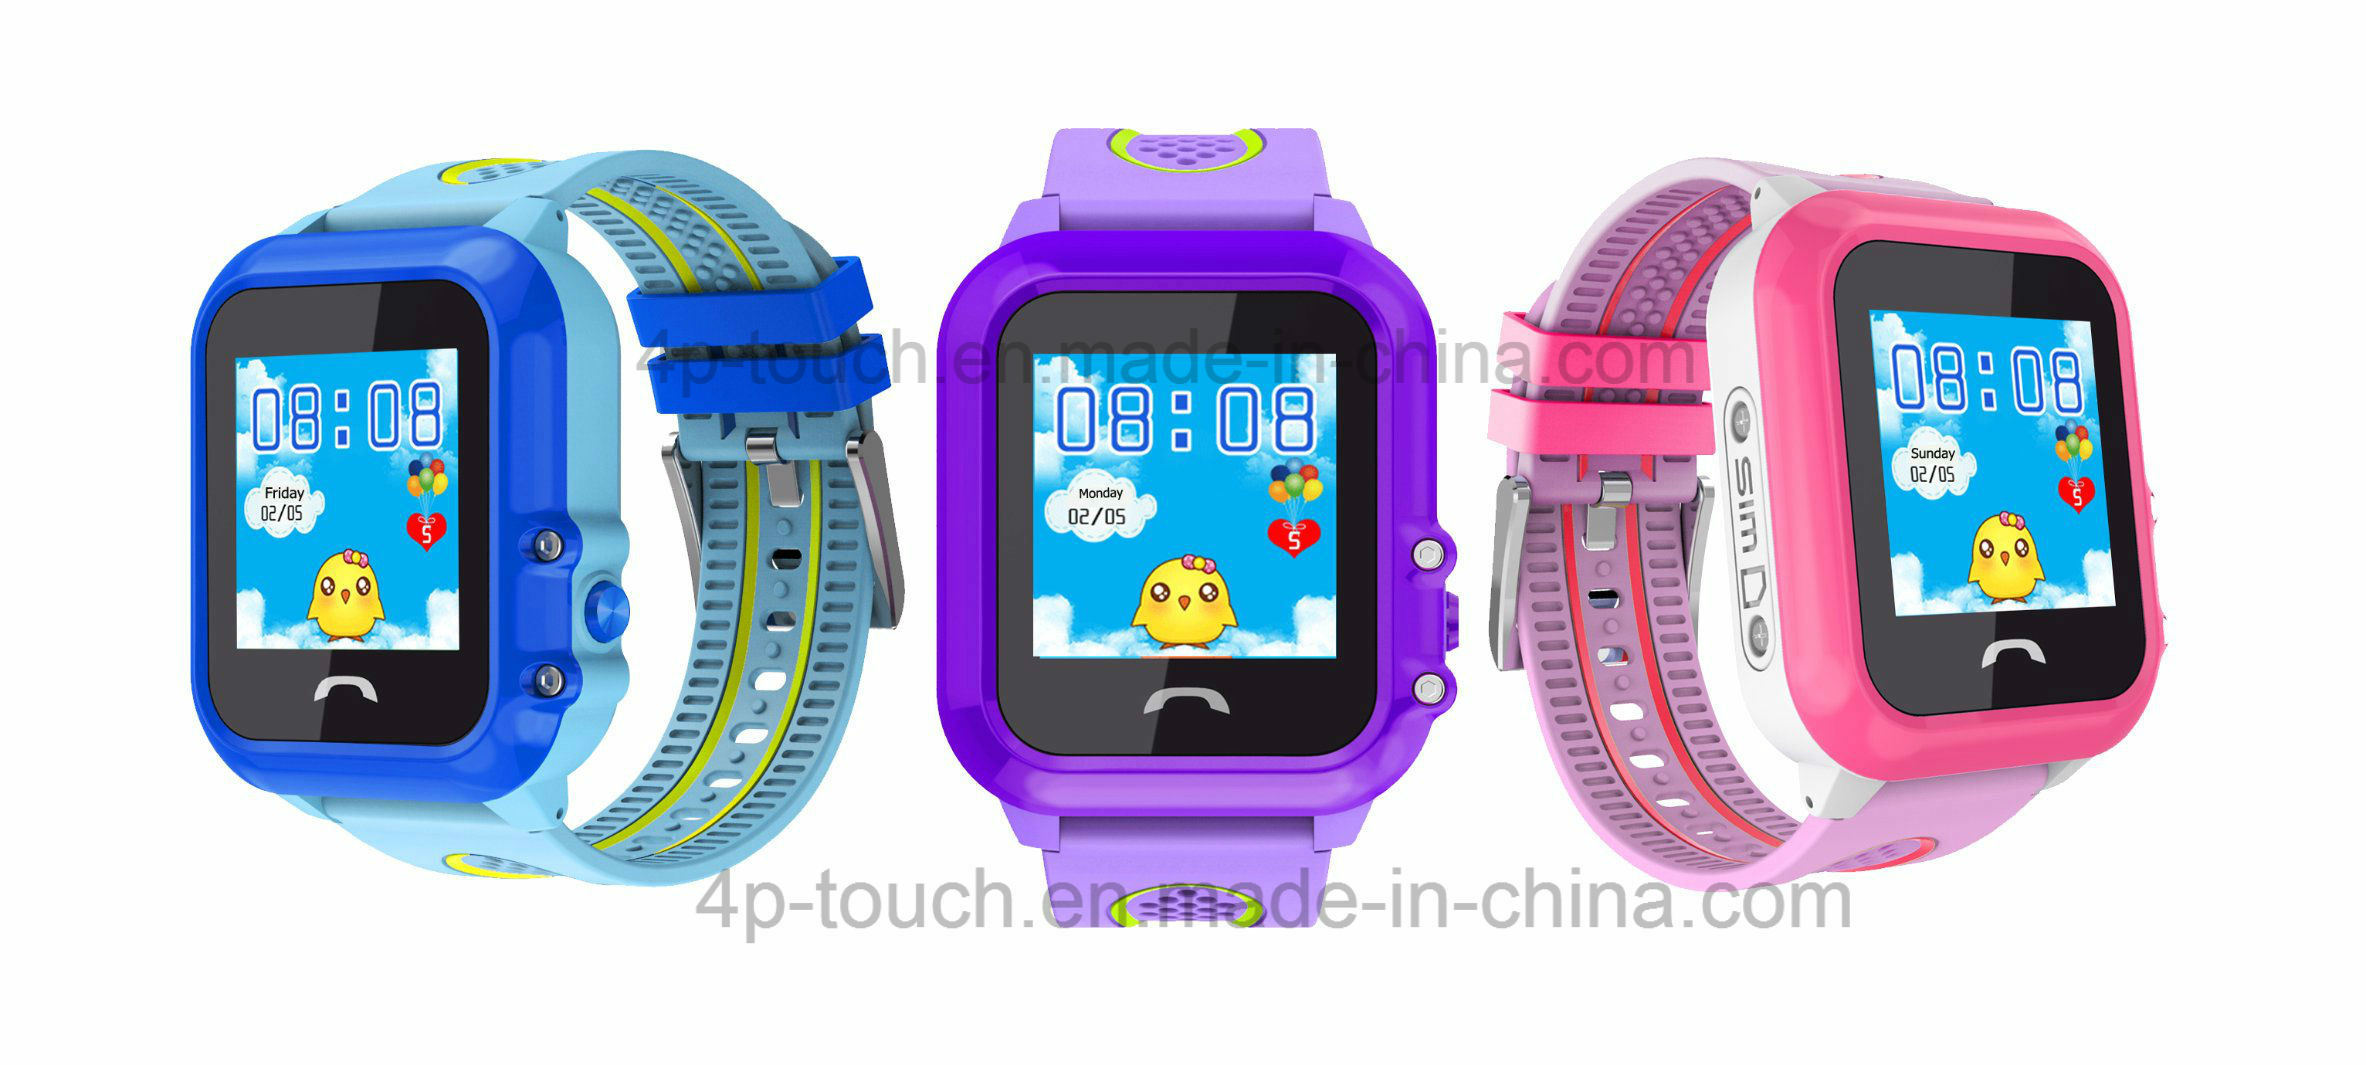 IP67 Waterproof Kids GPS Tracker Watch with Sos Button (D27)